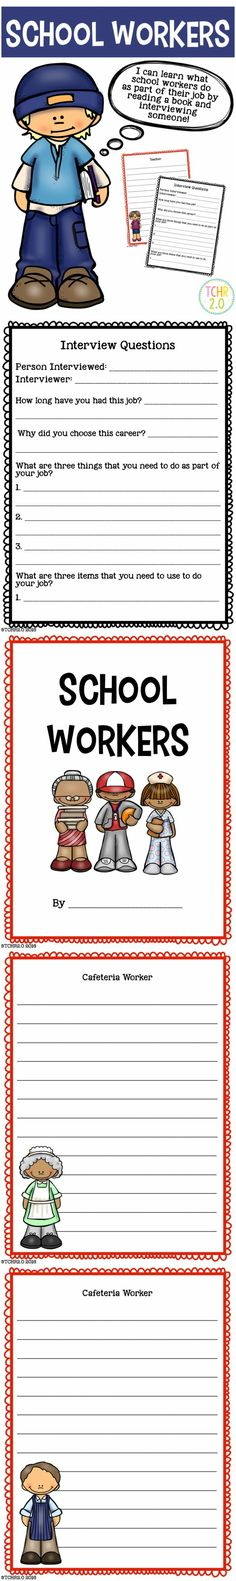 Do your students study school workers as part of your social studies curriculum? This product can be used to learn about the people that work at your school. Your students can read about and interview people who work at your school and then write a biography using the information they have gathered! Once they have all written a final copy you can make a class book for them to take home. Available in both color and black and white.